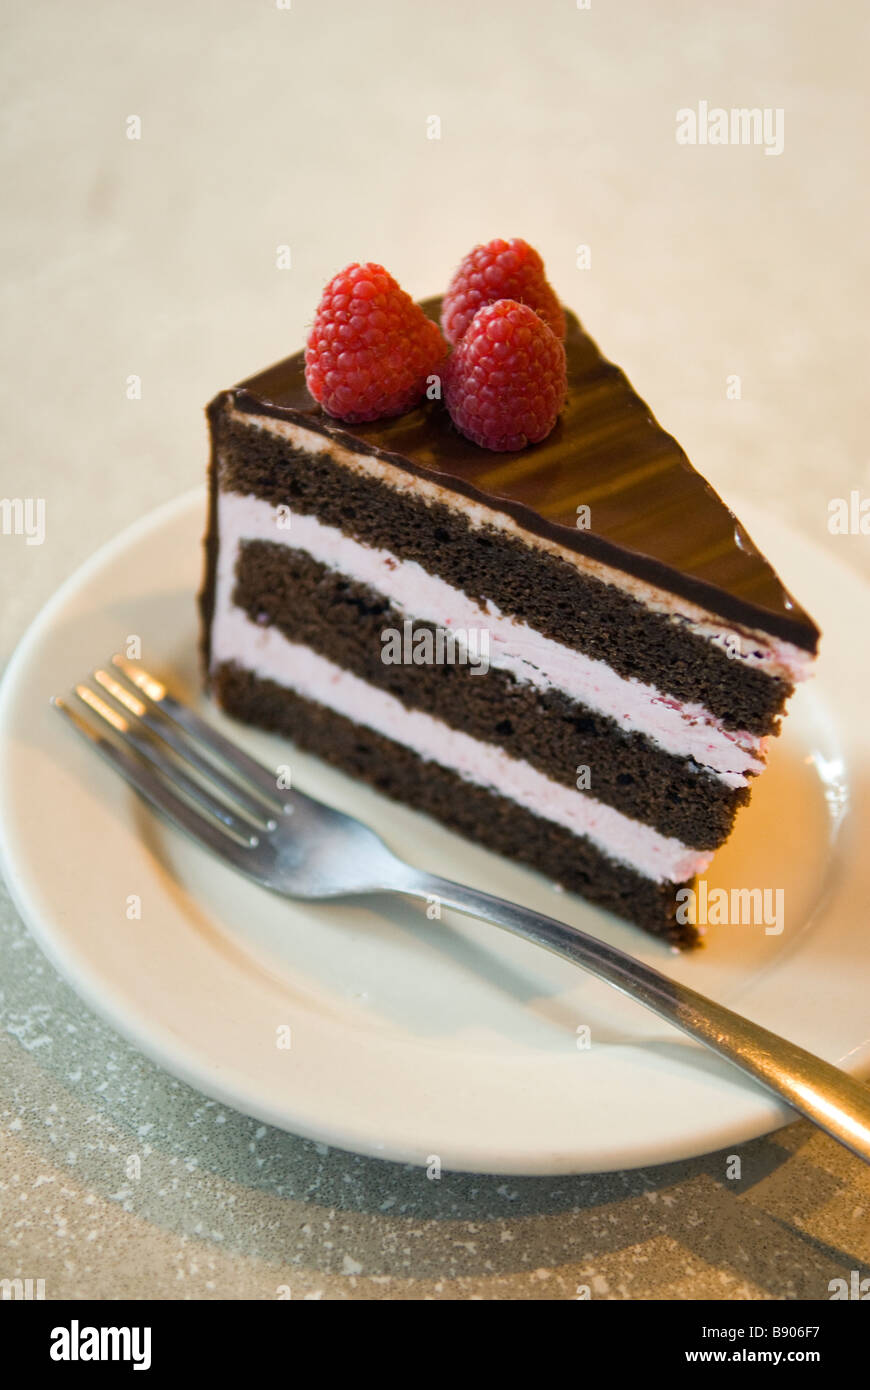 Slice of chocolate cake with raspberries at Love Cafe in the U Street neighborhood of Washington, District of Columbia, - Stock Image